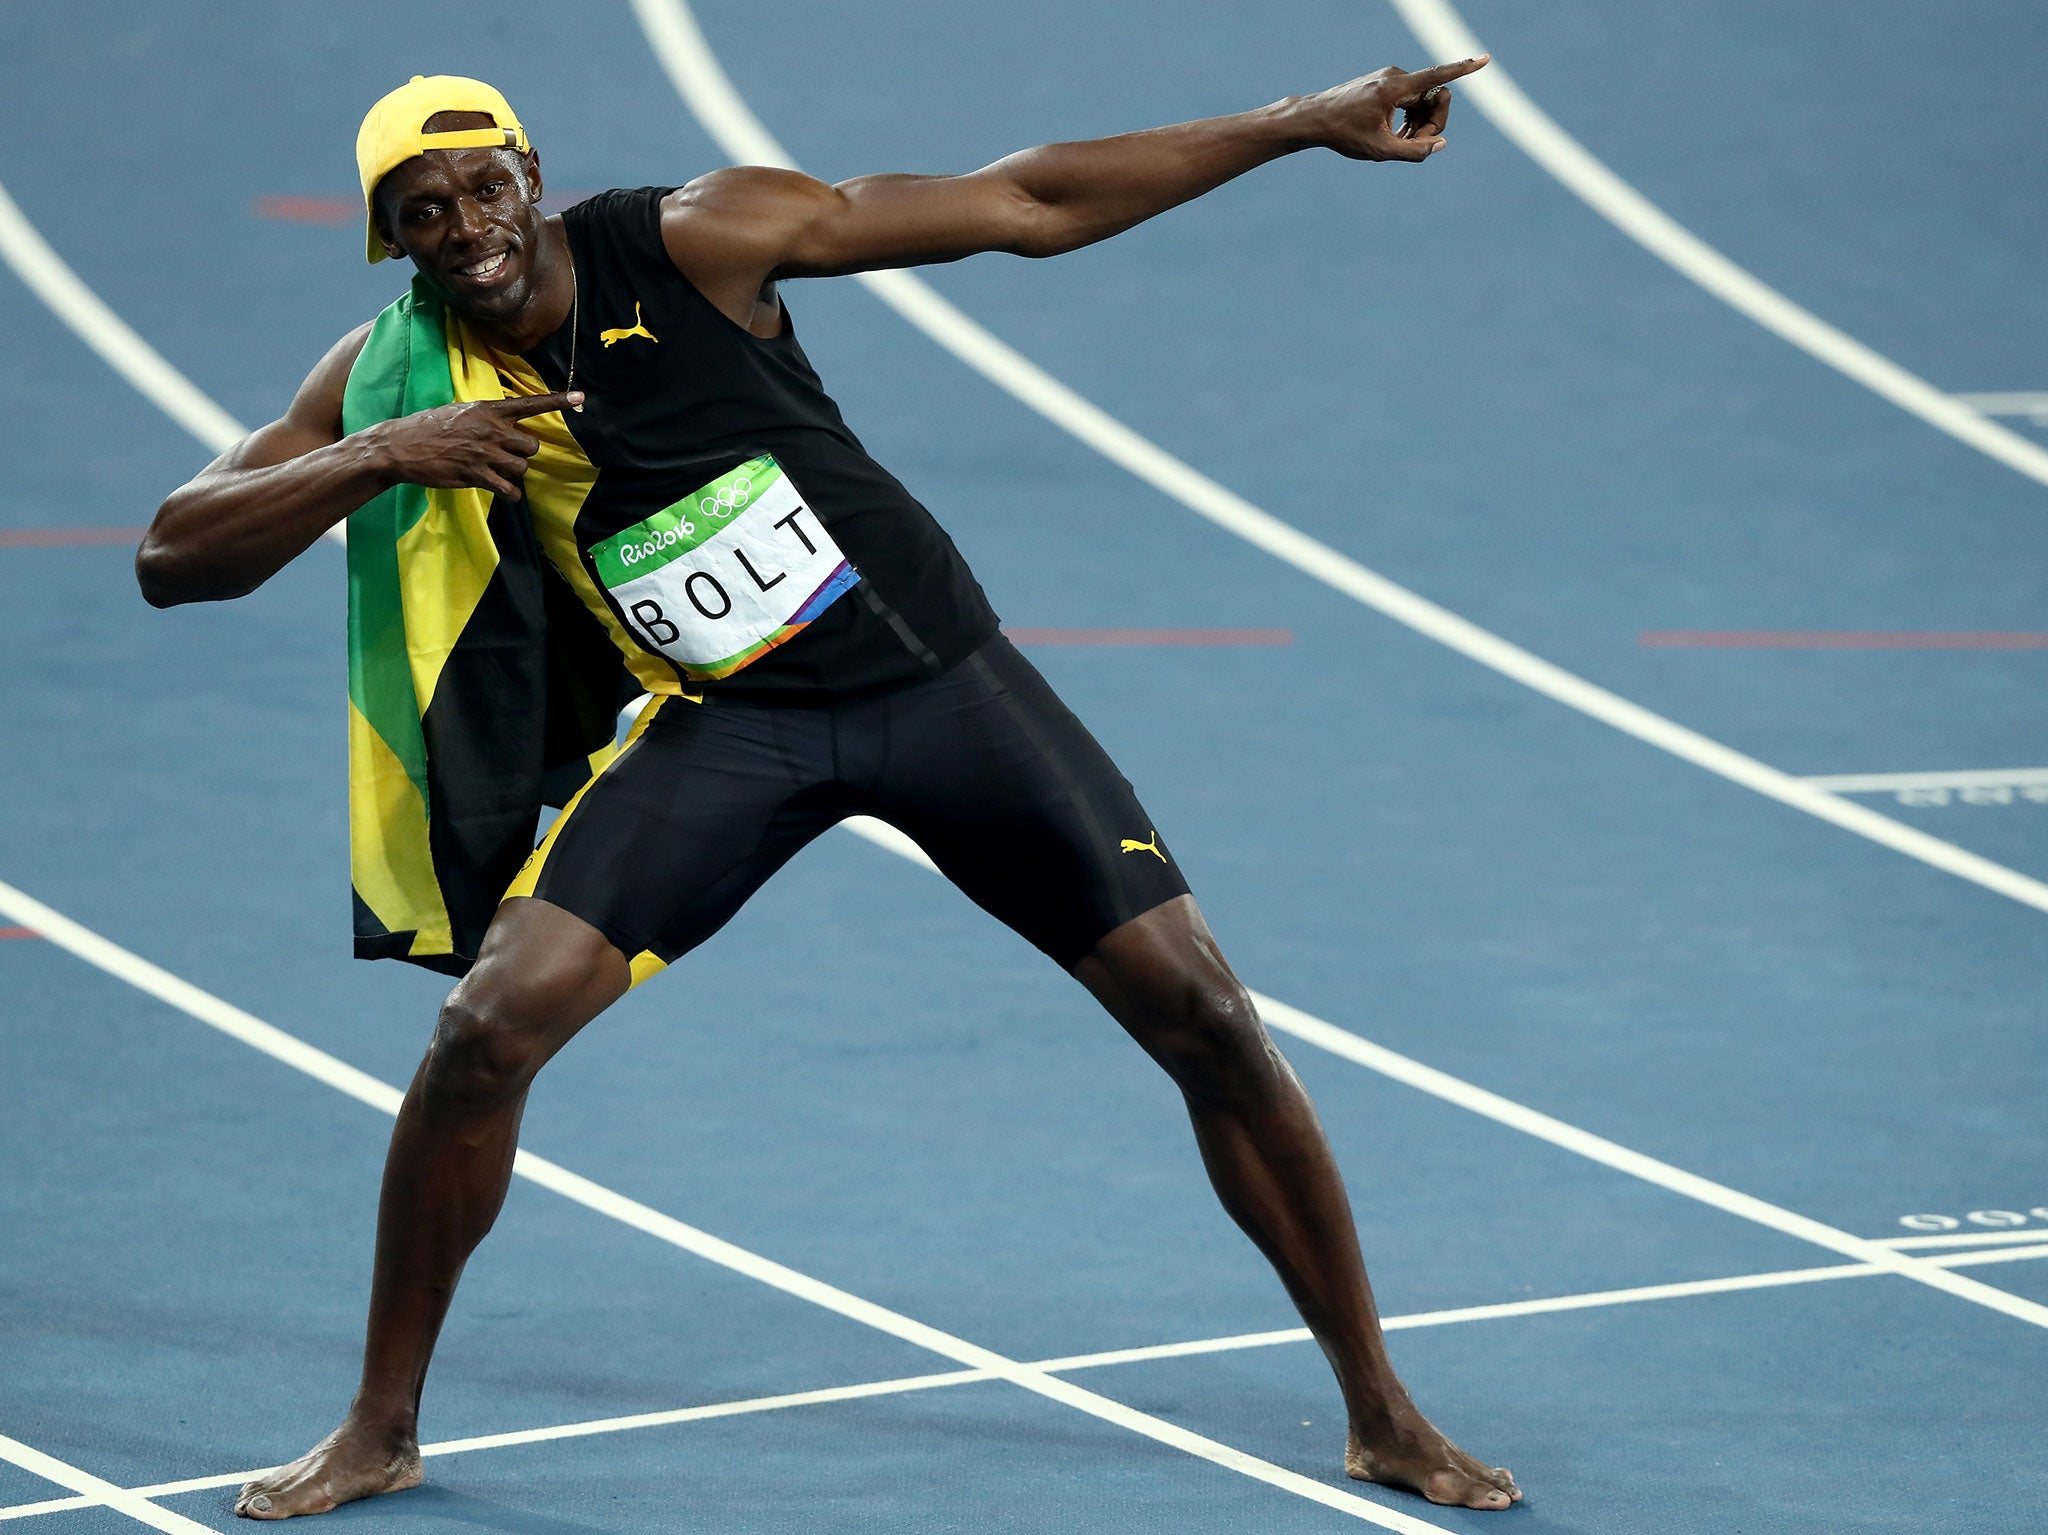 Rio 2016: Of the 30 fastest 100m times ever, only nine were achieved by a clean athlete - and all were run by Usain Bolt